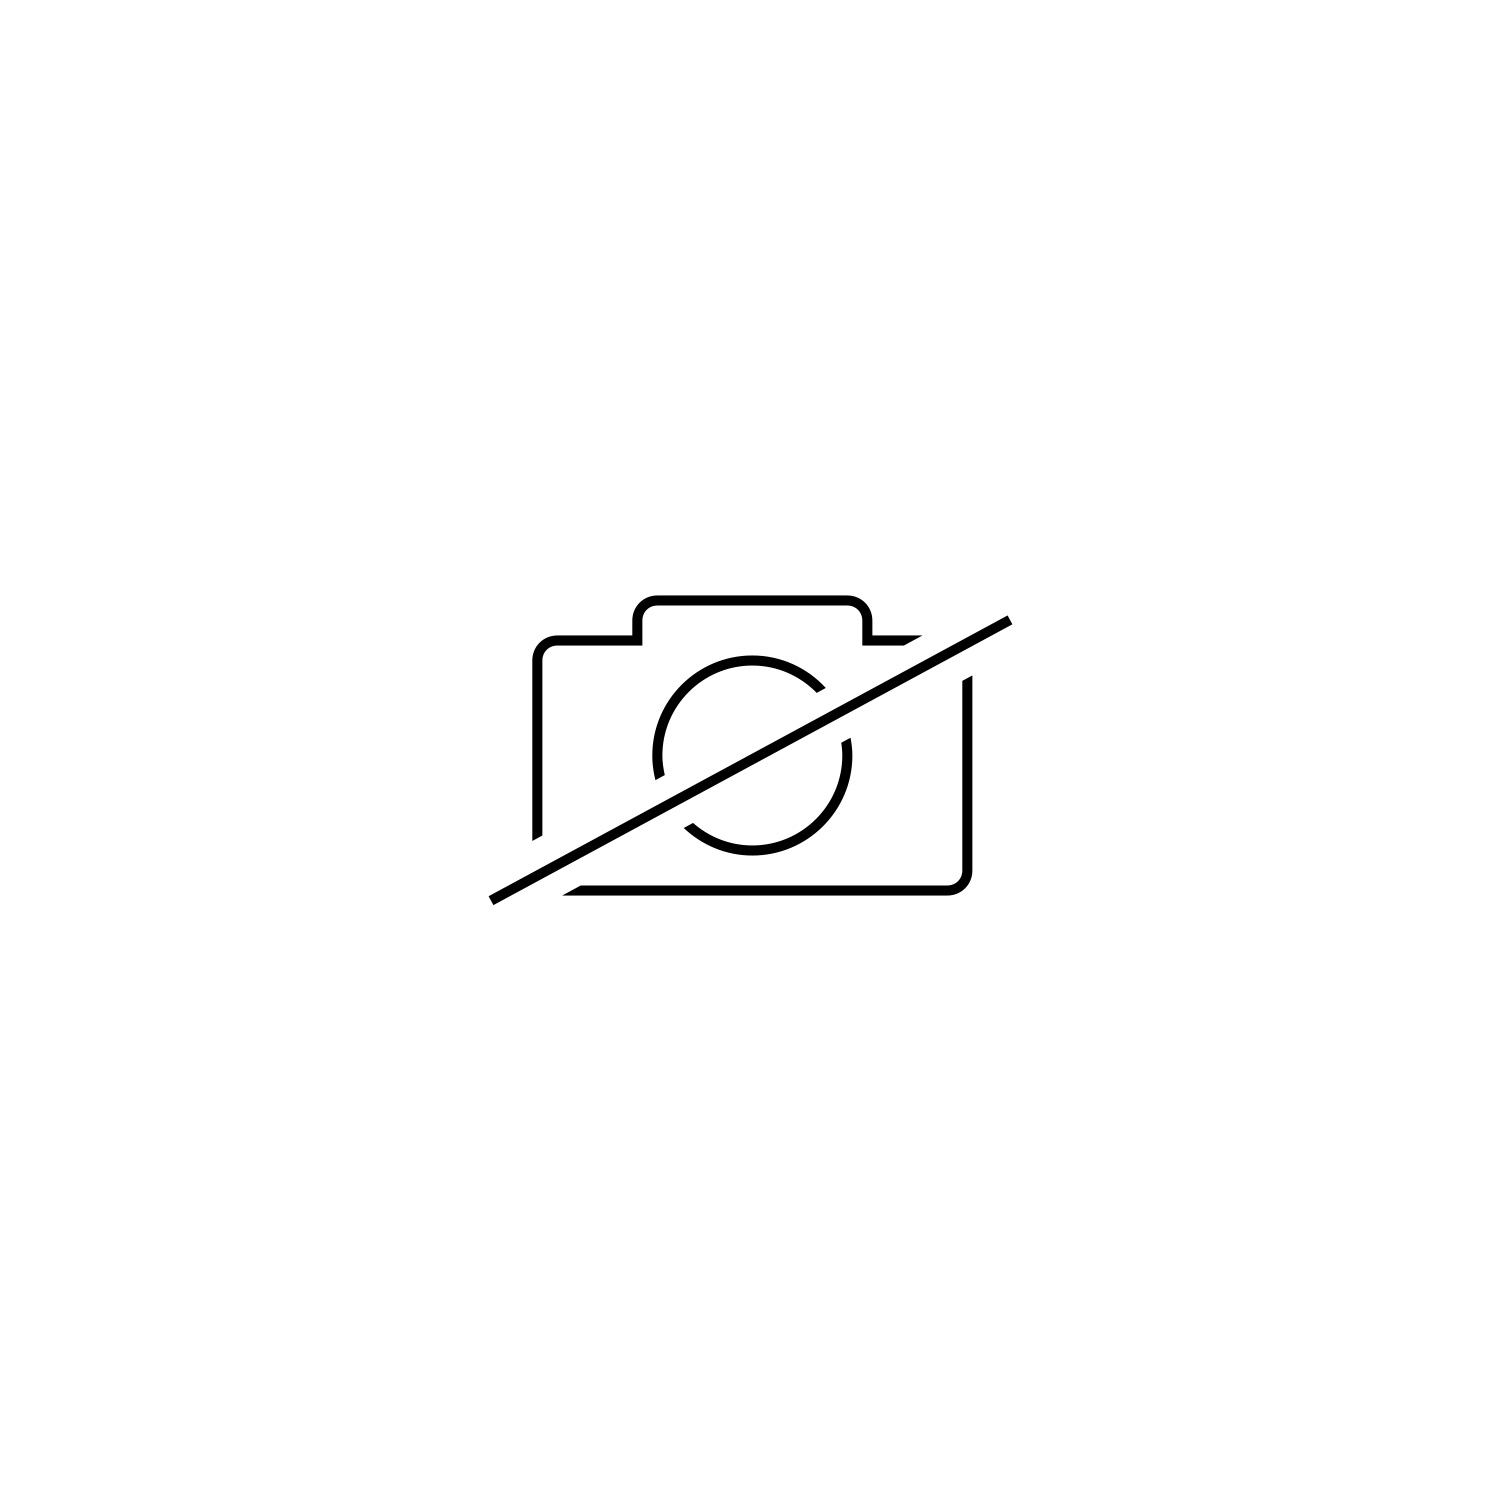 quattro outdoorjacket, Mens, grey/black, XL